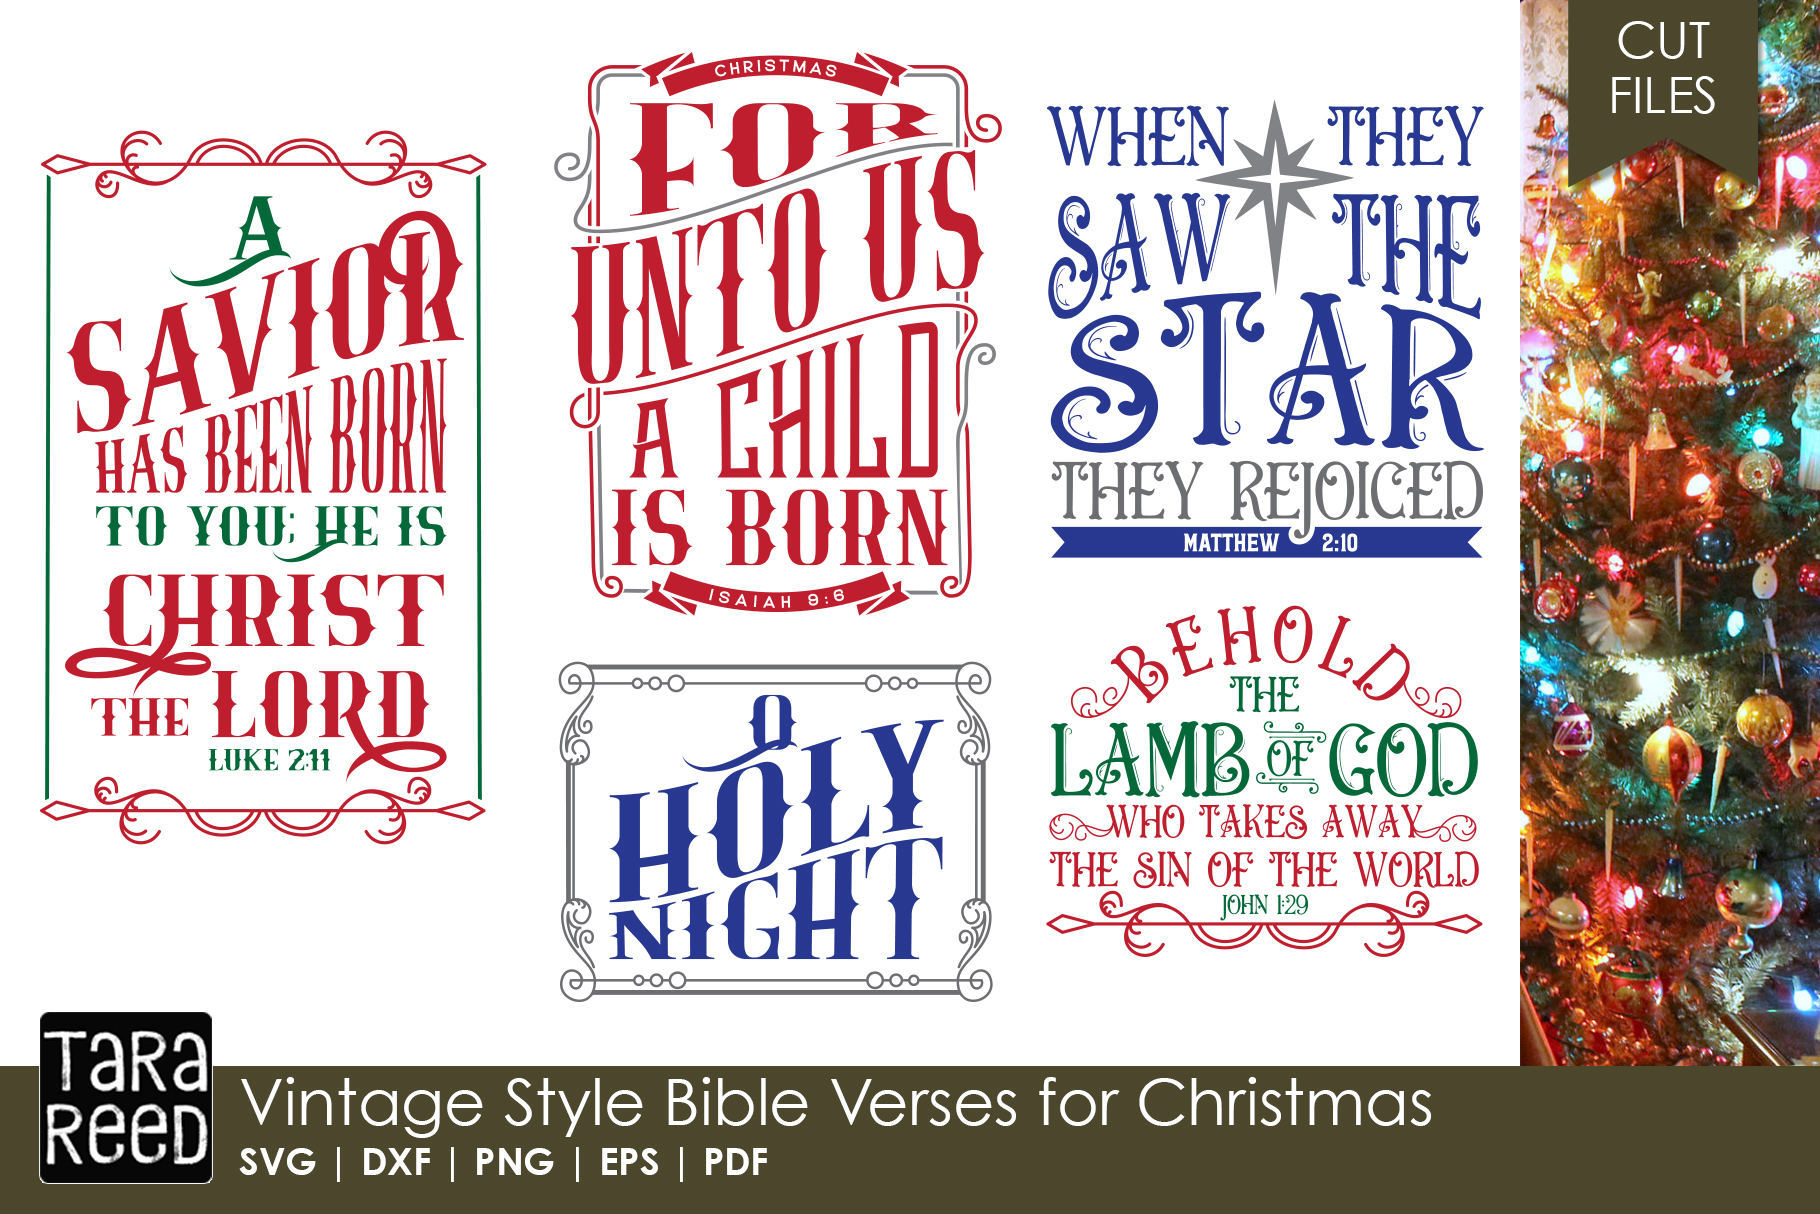 Christmas Bible Verse.Vintage Style Bible Verses For Christmas Svg Cut Files